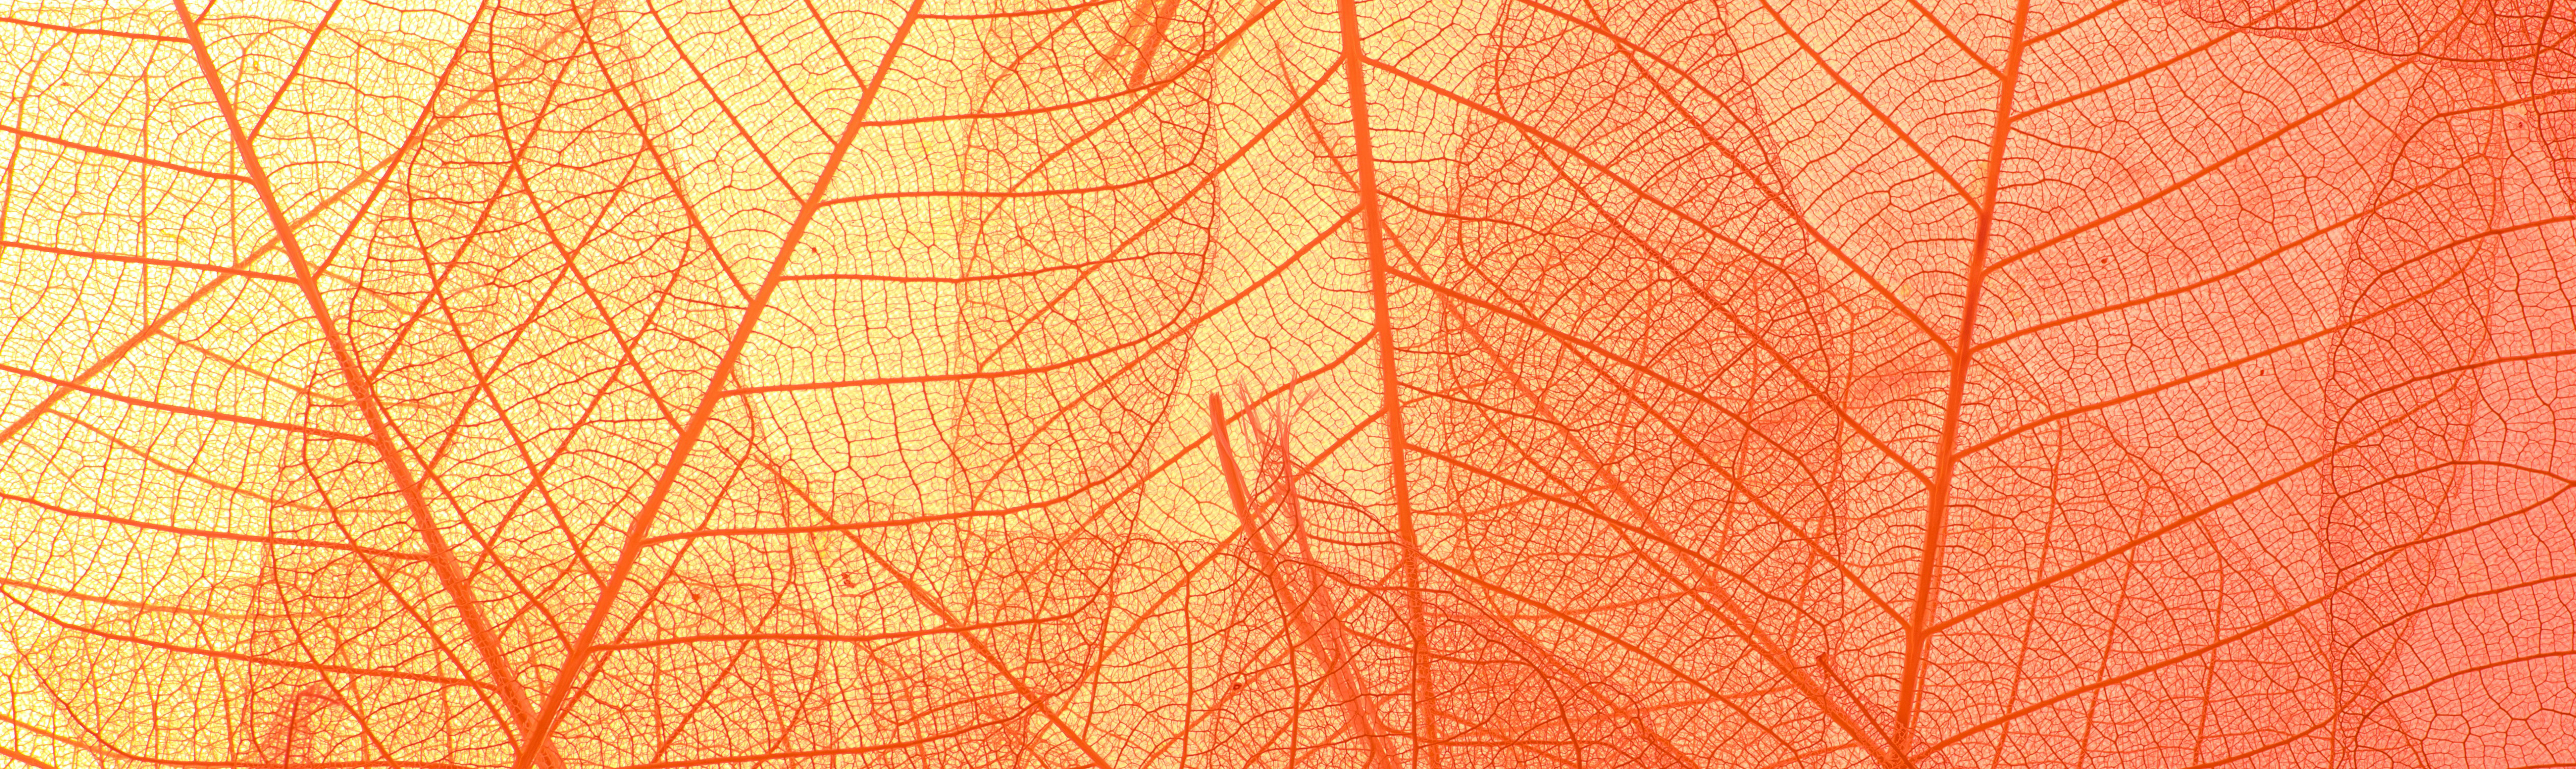 an image of colorful leaves